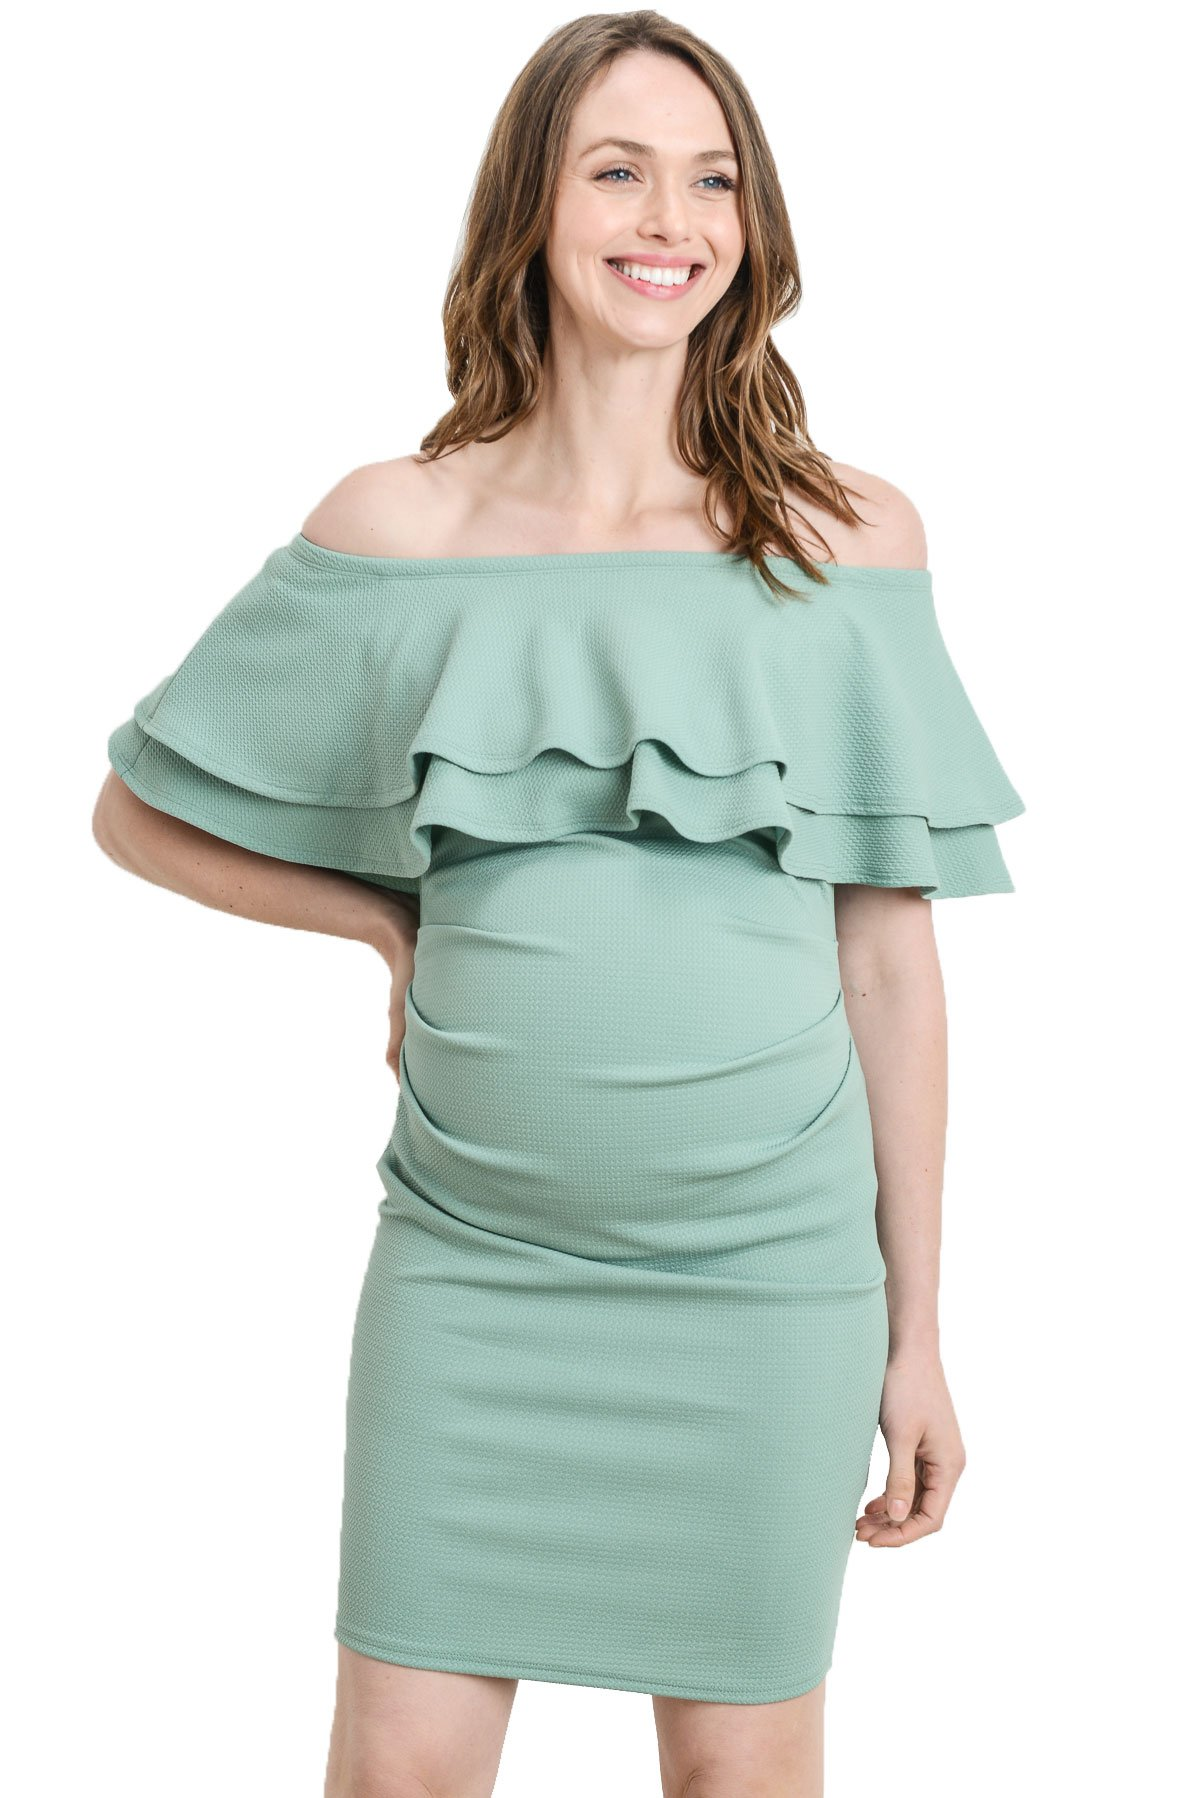 LaClef Women's Double Ruffled Fitted Off Shoulder Maternity Dress (Sage, Medium)